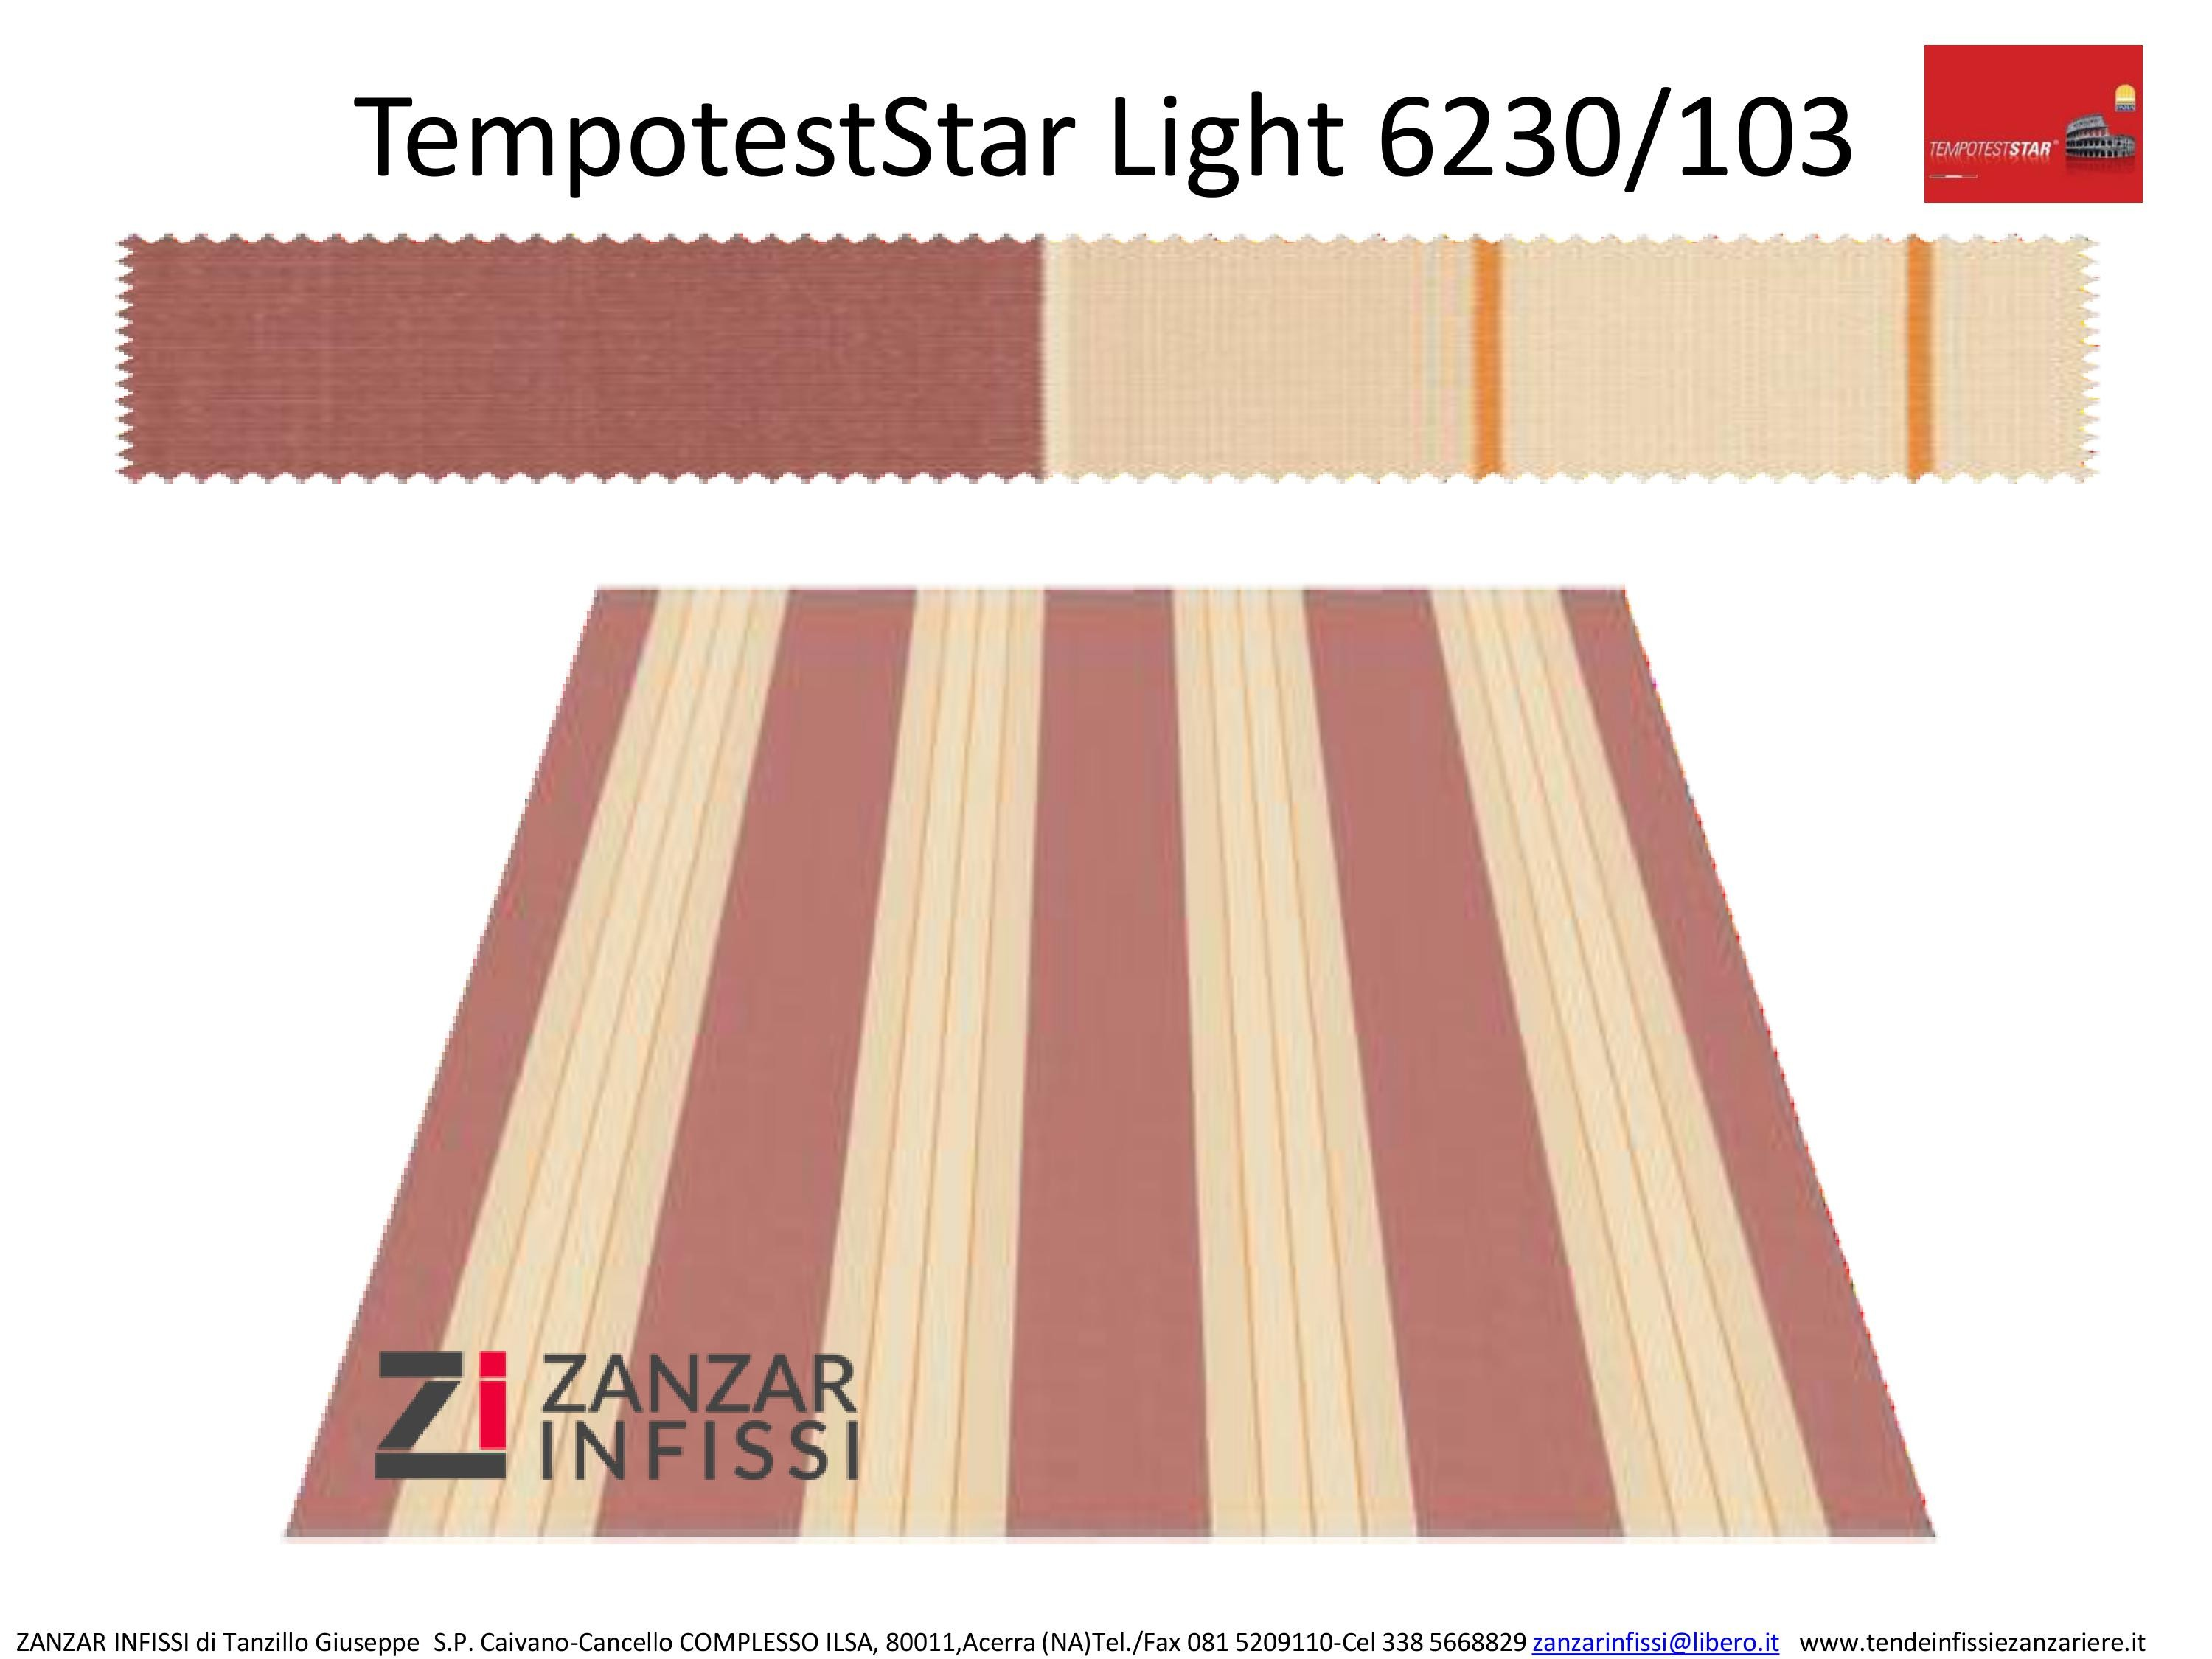 Tempotest star light 6230/103